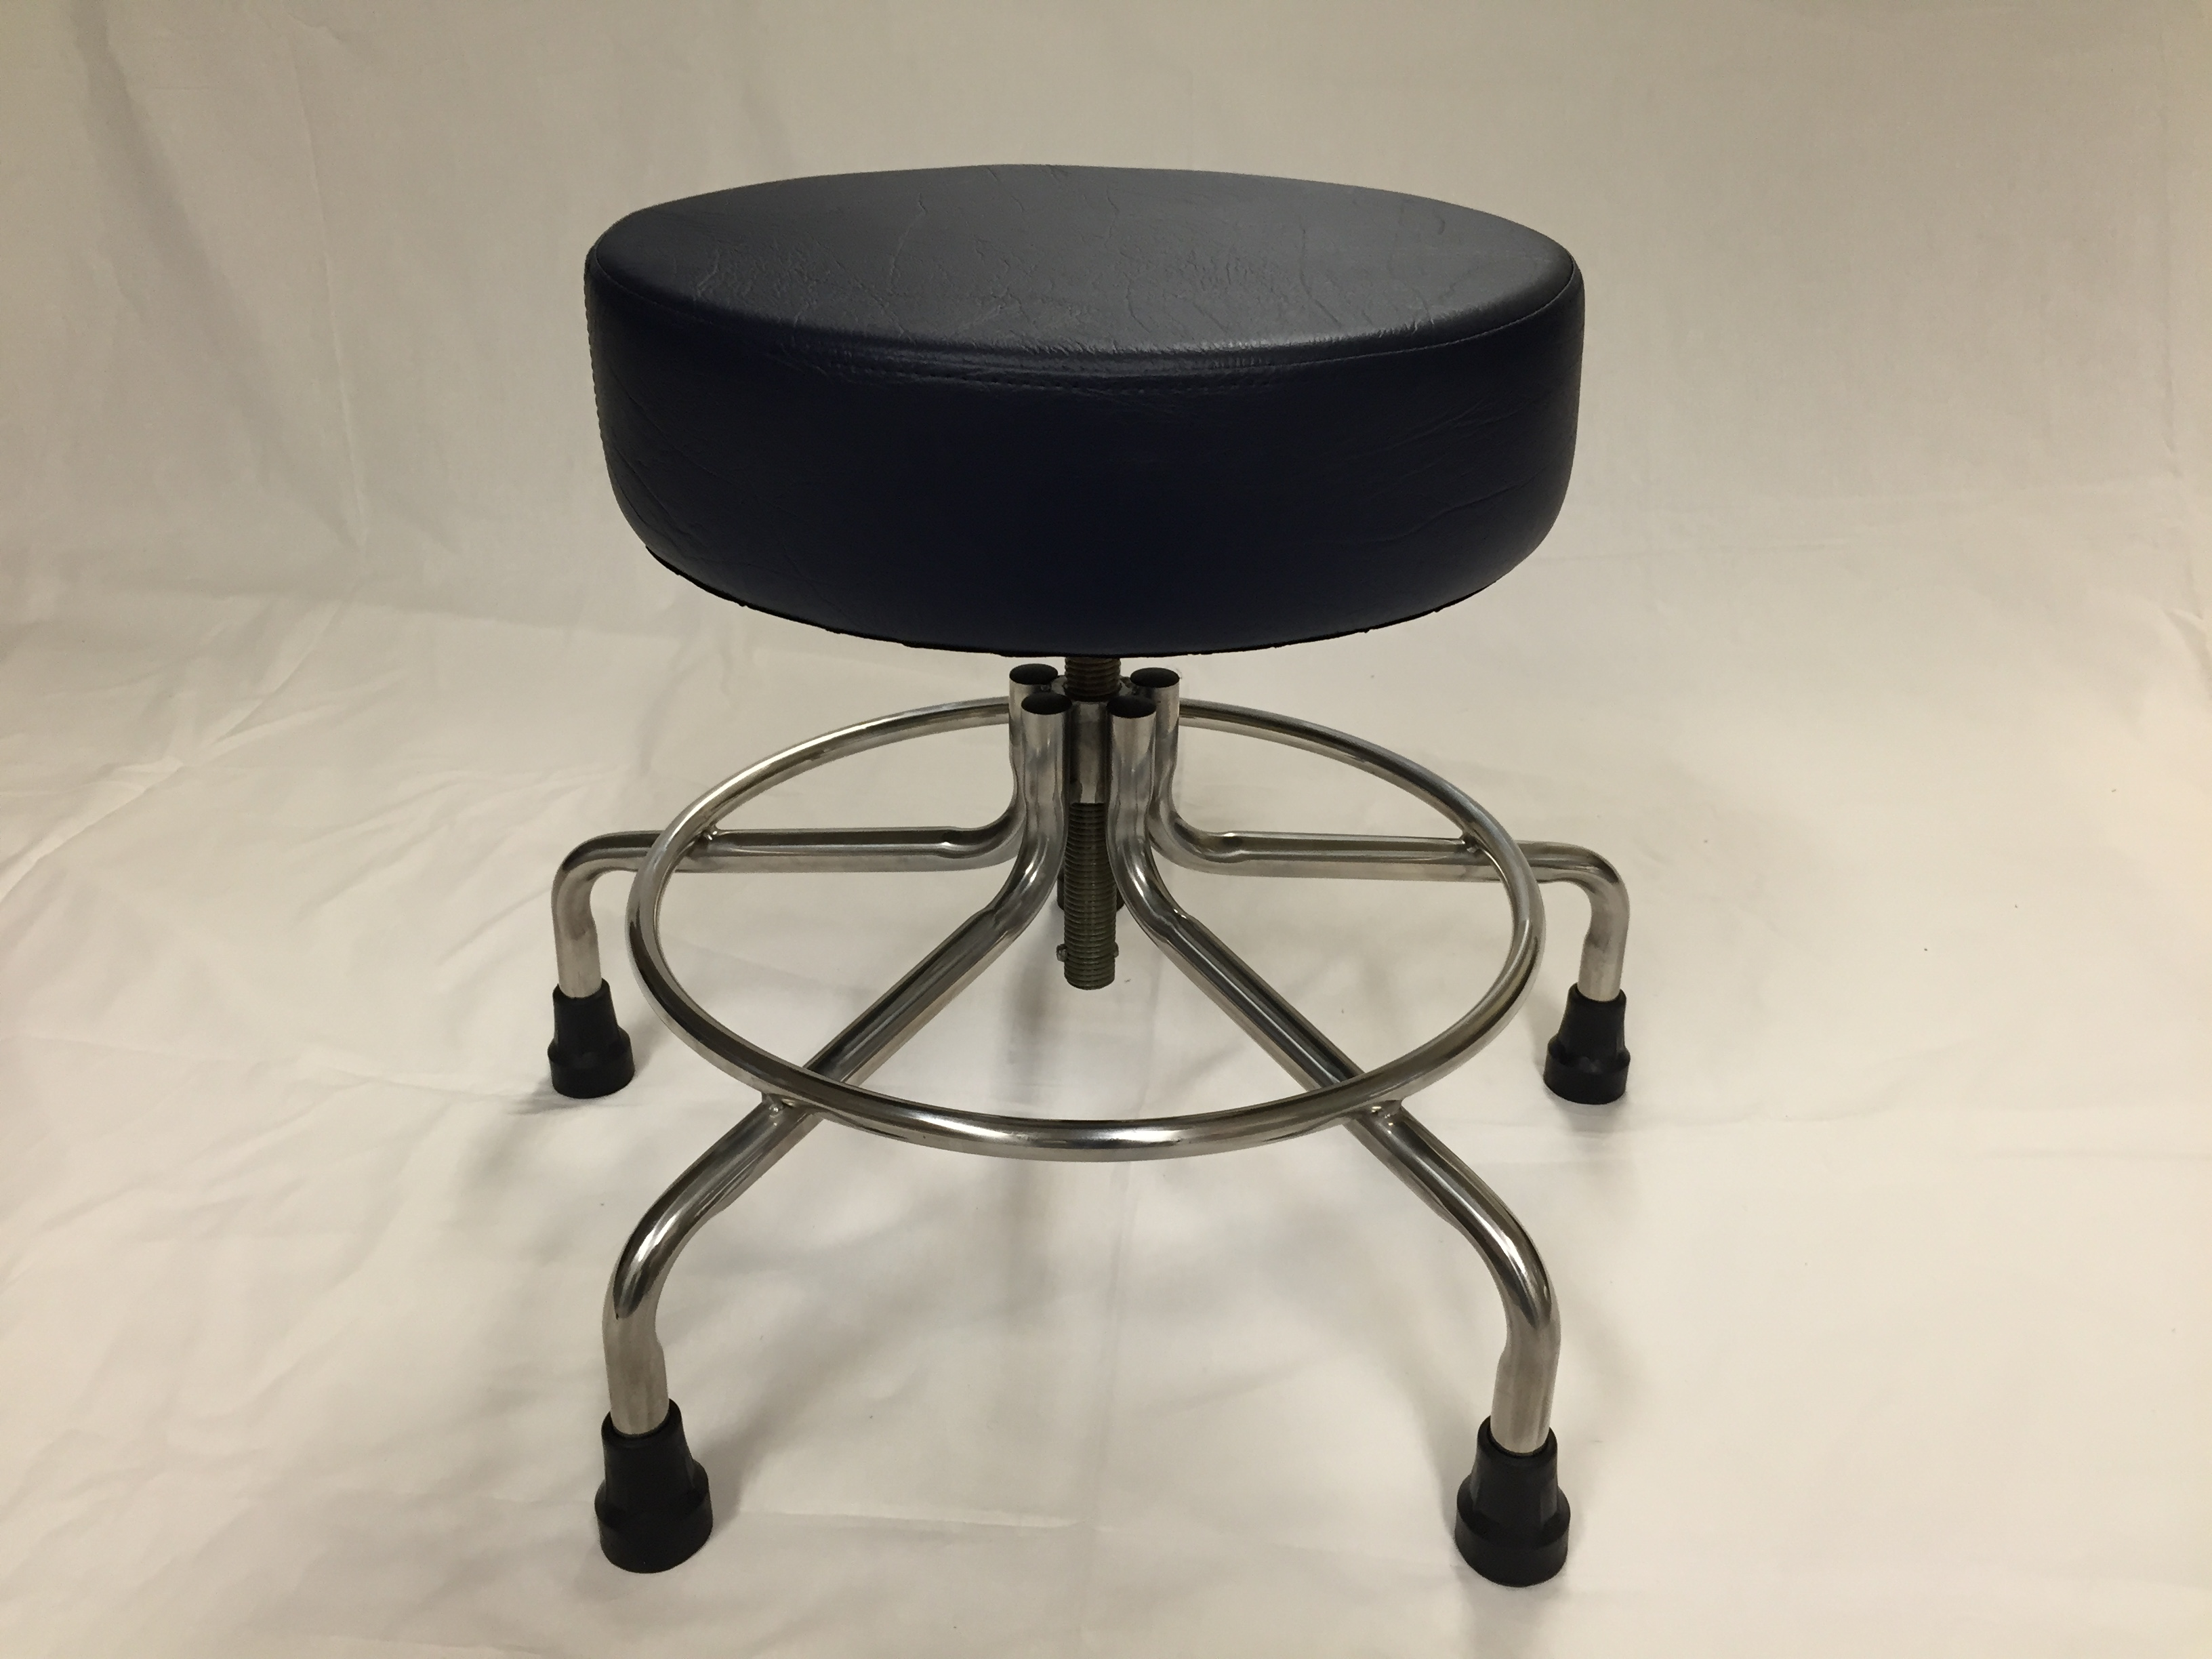 "MR Adj. Doctors Stool 21-27"" w/Rubber Tips"